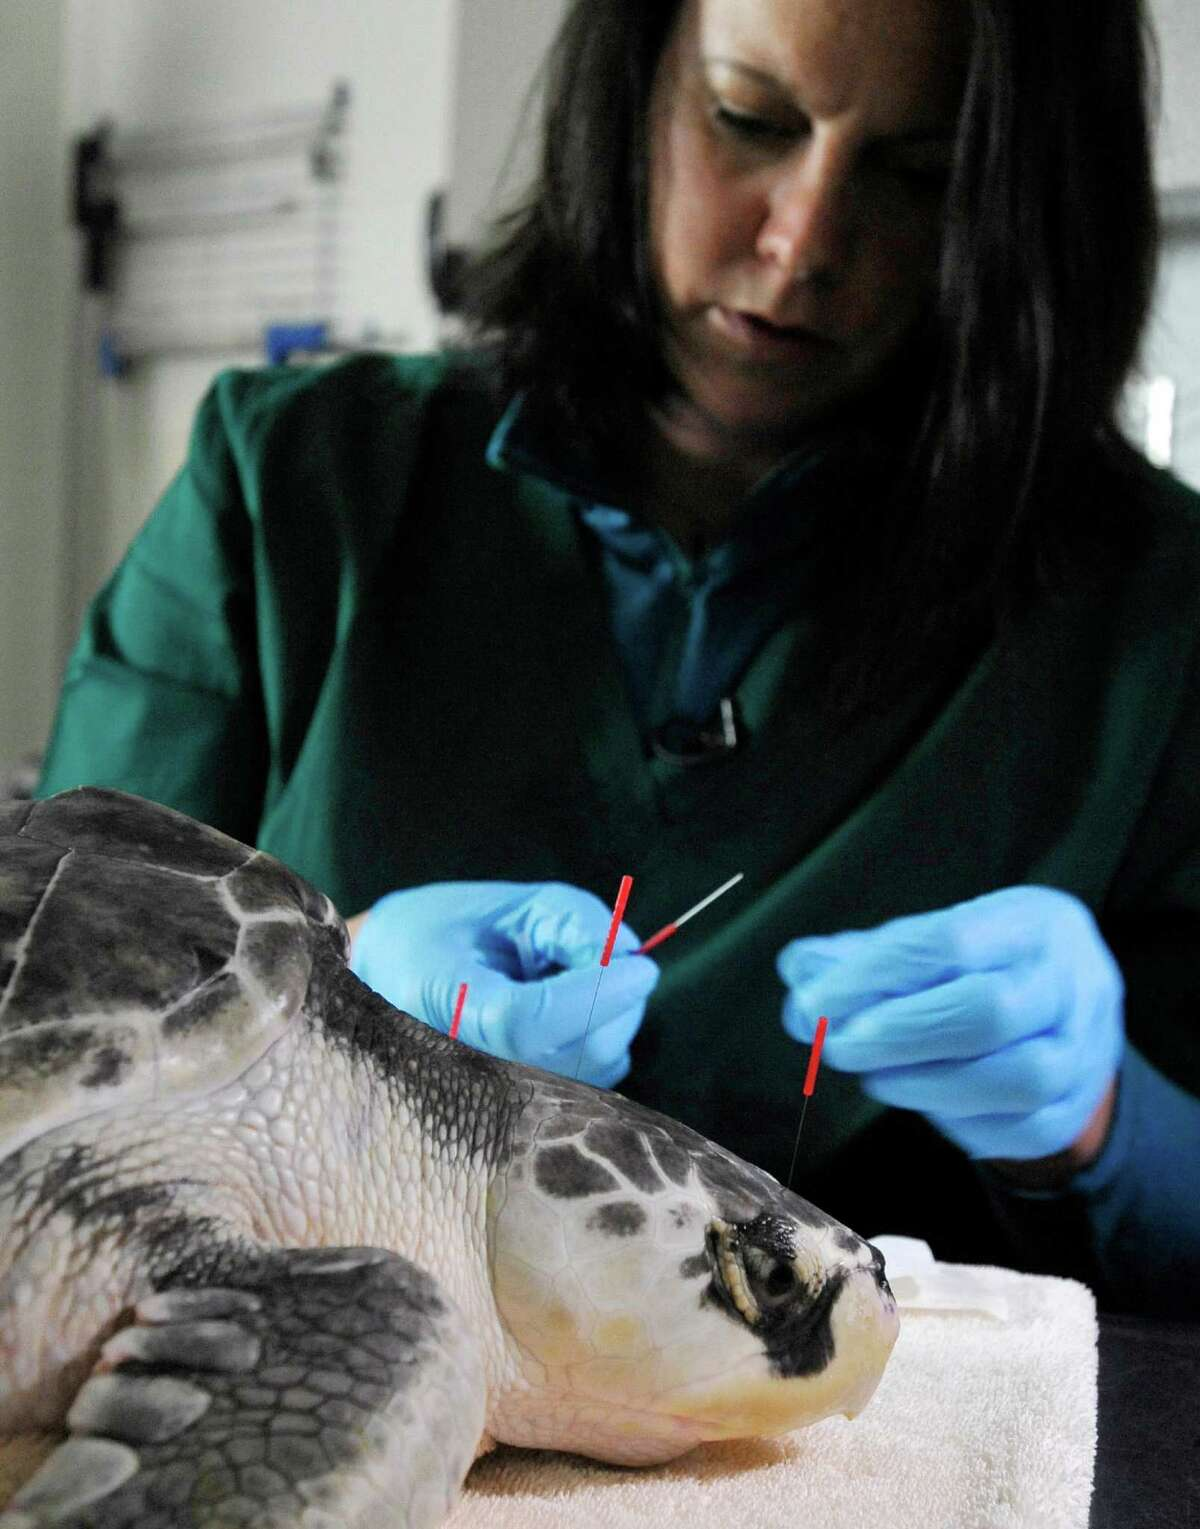 In this Monday, May 202013 photo, acupuncturist Claire McManus applies needles to the head of a Kemp's Ridley turtle named Dexter during acupuncture therapy at the New England Aquarium's sea turtle hospital in Quincy, Mass. Dexter is one of the turtles receiving therapy after getting stranded on Cape Cod over the winter. (AP Photo/Cape Cod Times, Steve Heaslip) MANDATORY CREDIT